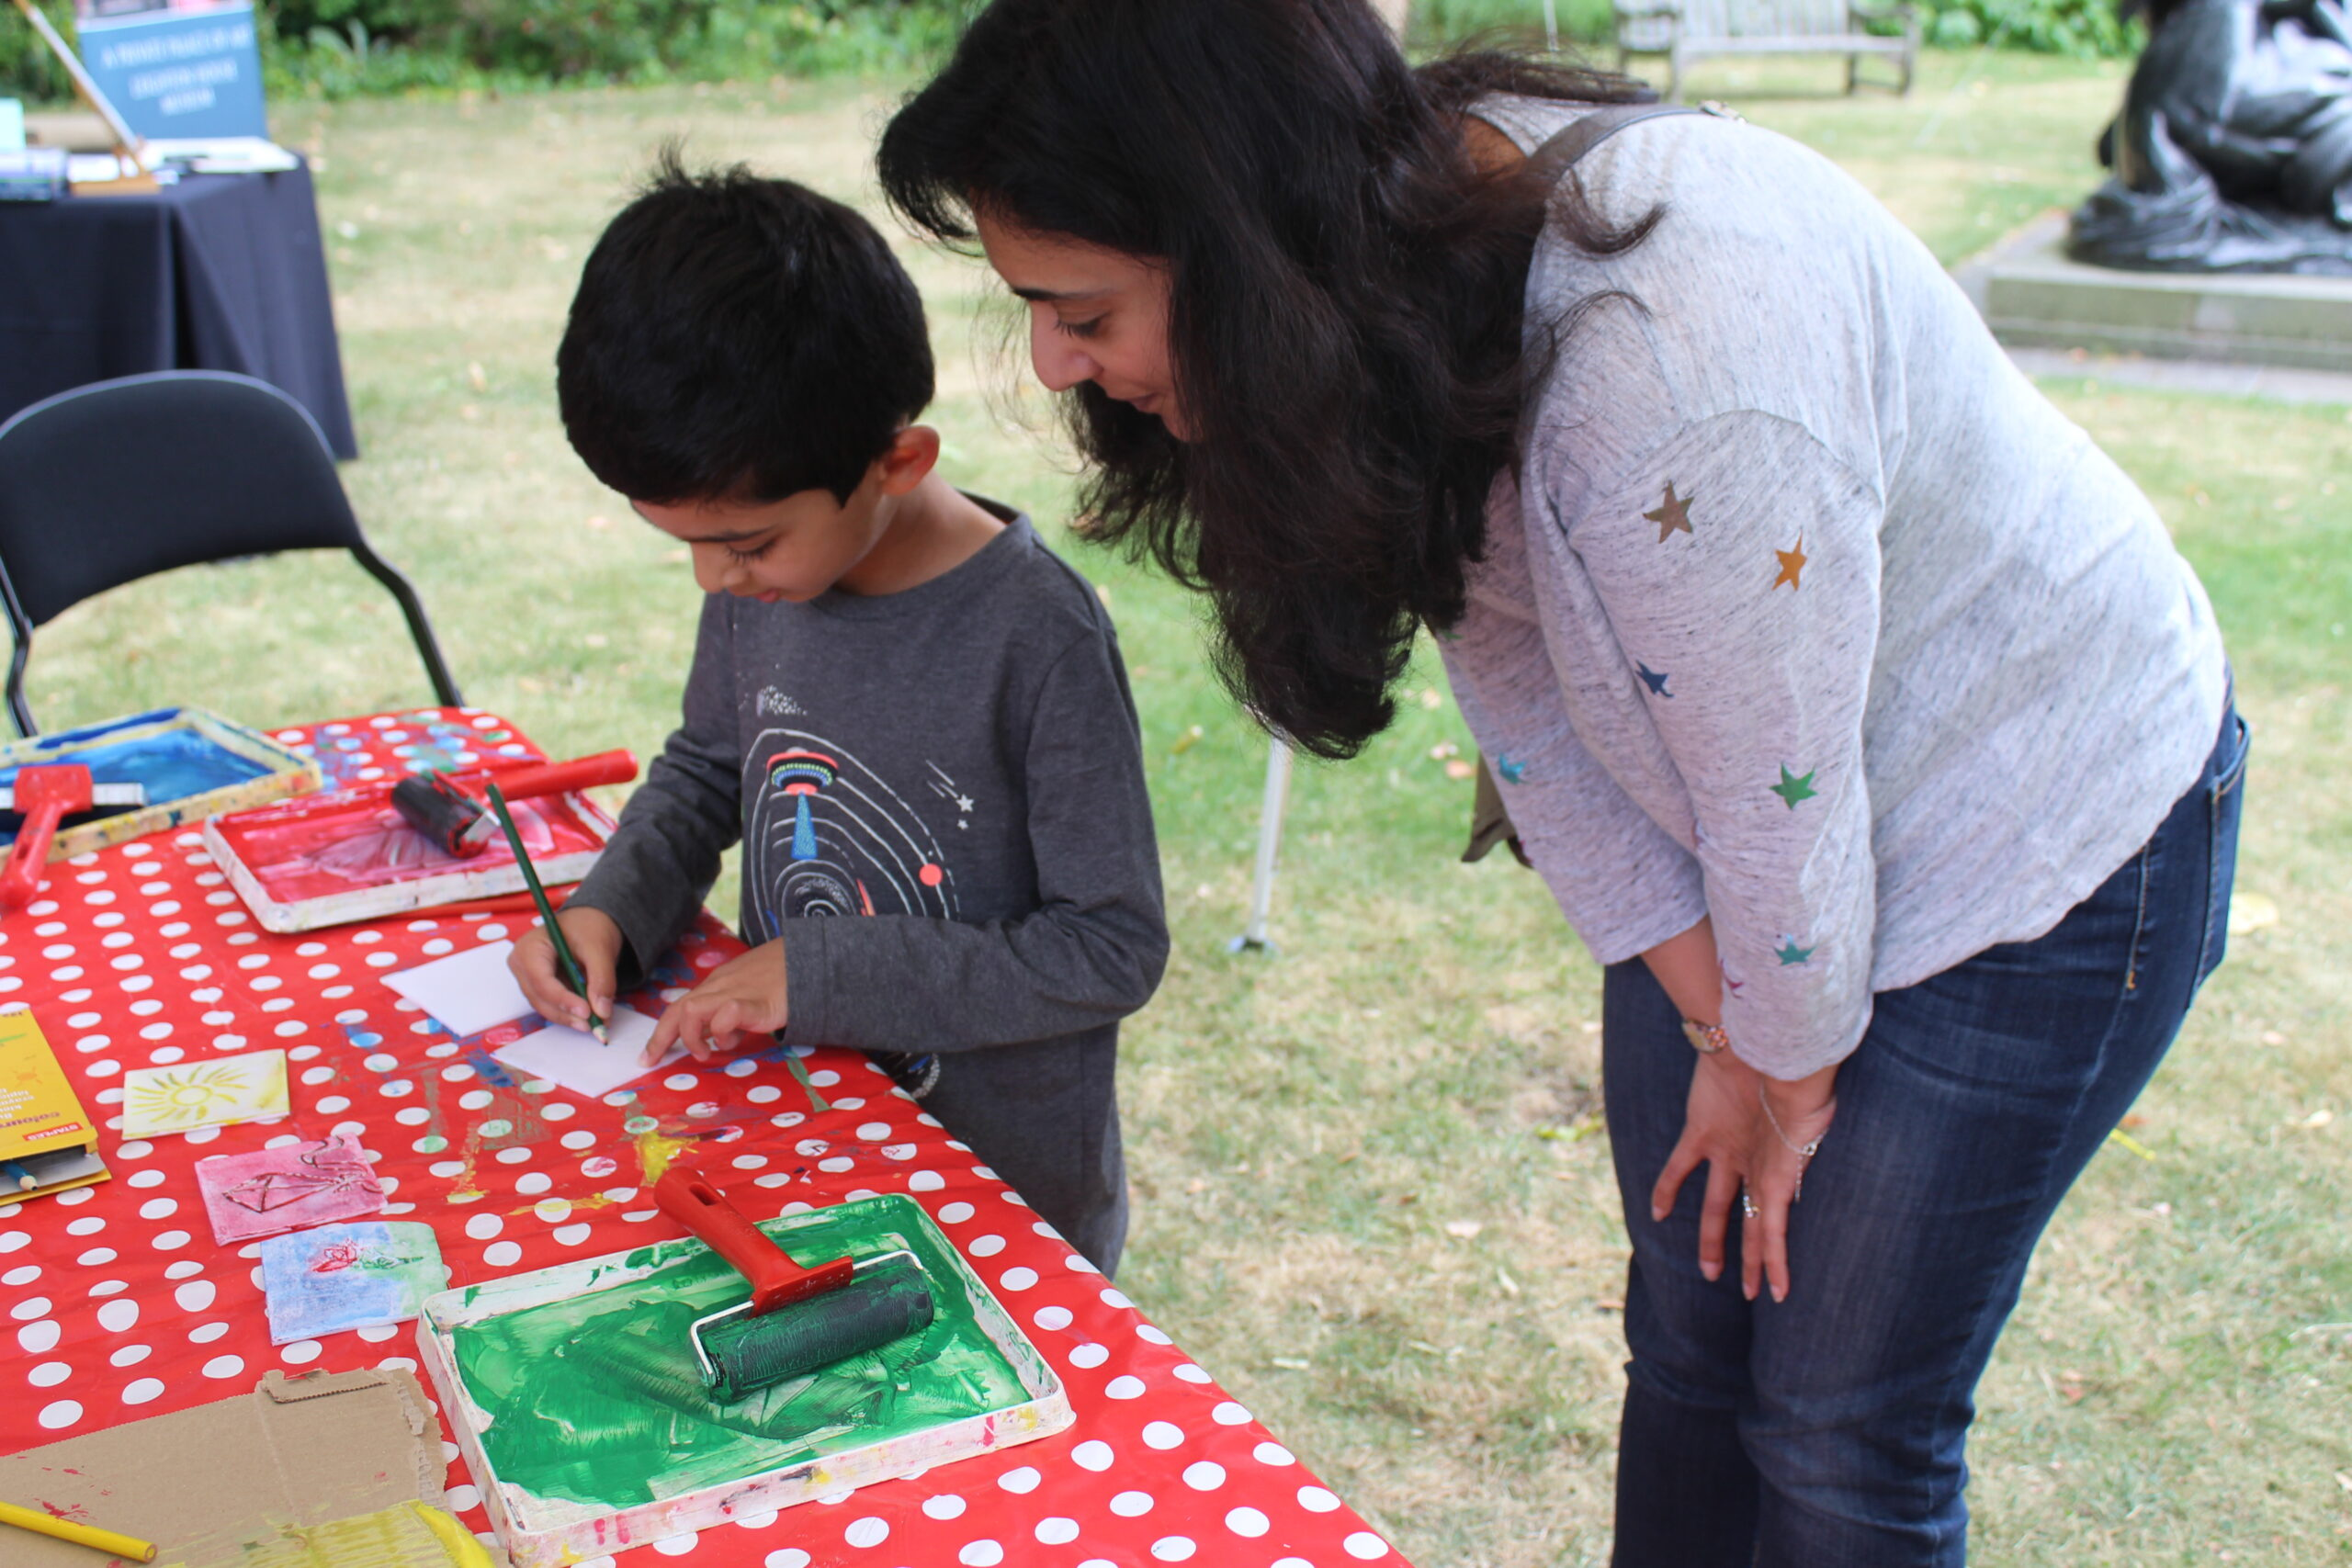 A young boy with his mother completing a lino print